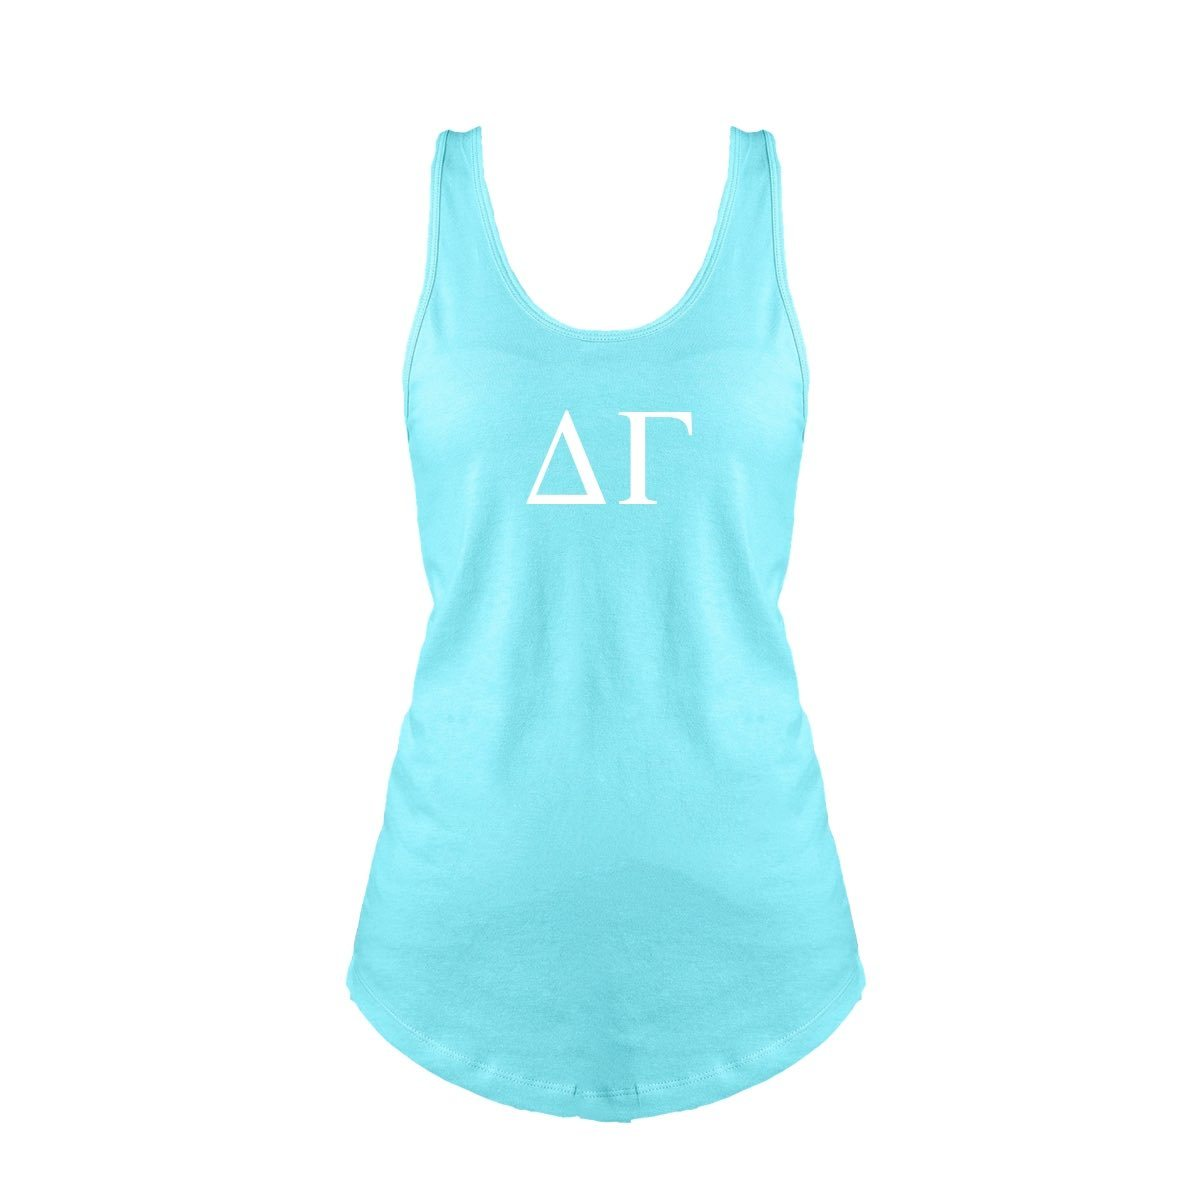 Aqua Delta Gamma Tank top with Large Greek Letters on front. Perfect sorority tank top for swimsuit coverup or oversized nightshirt.